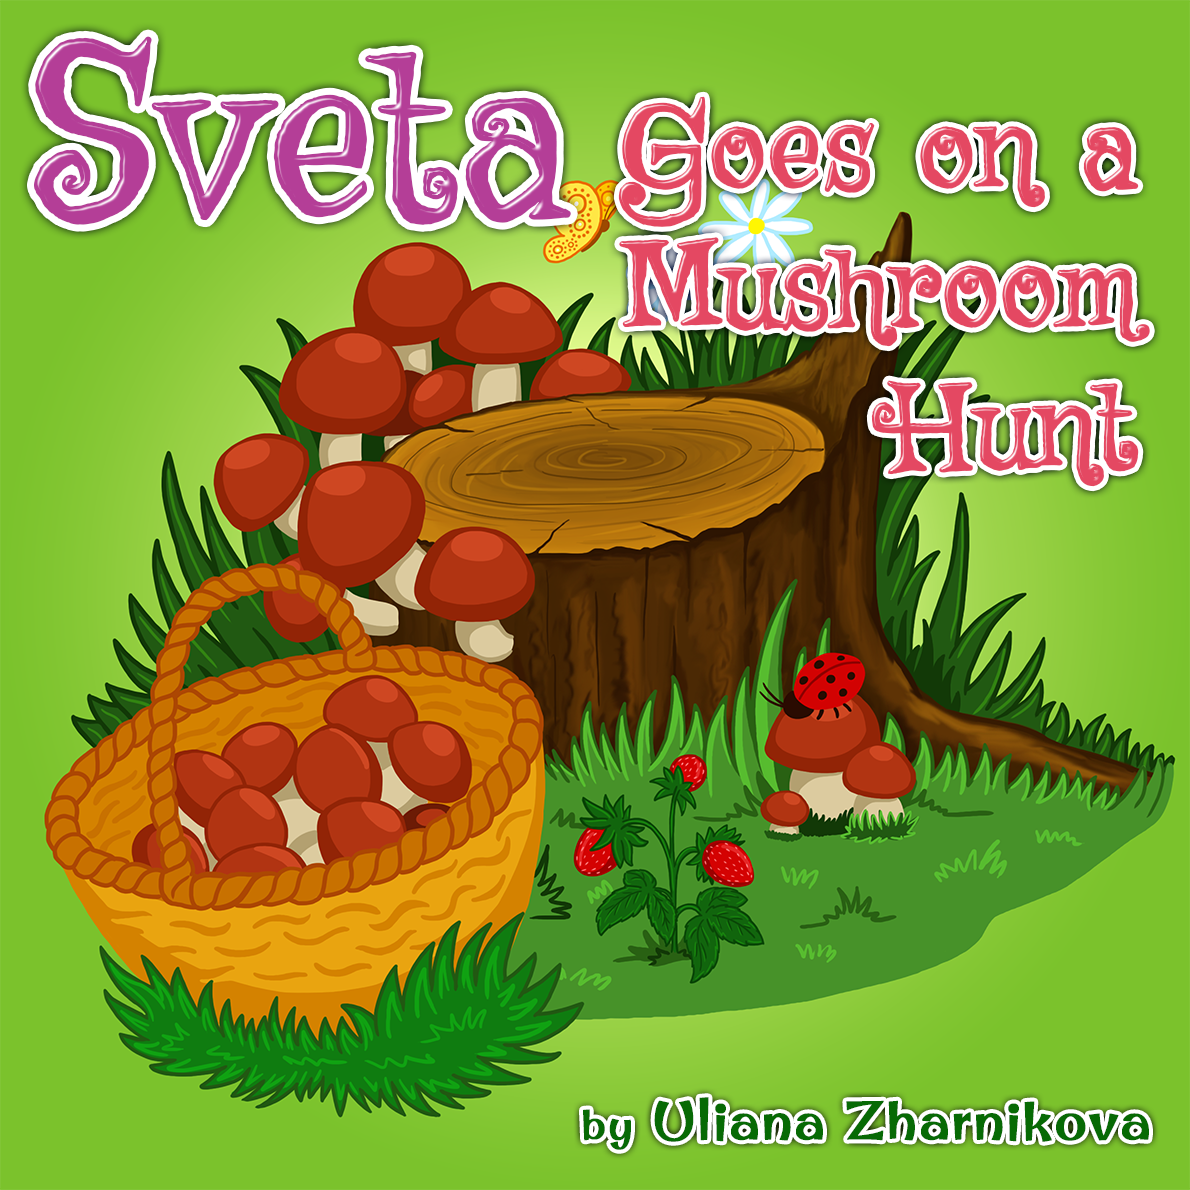 Sveta Goes on a Mushroom Hunt